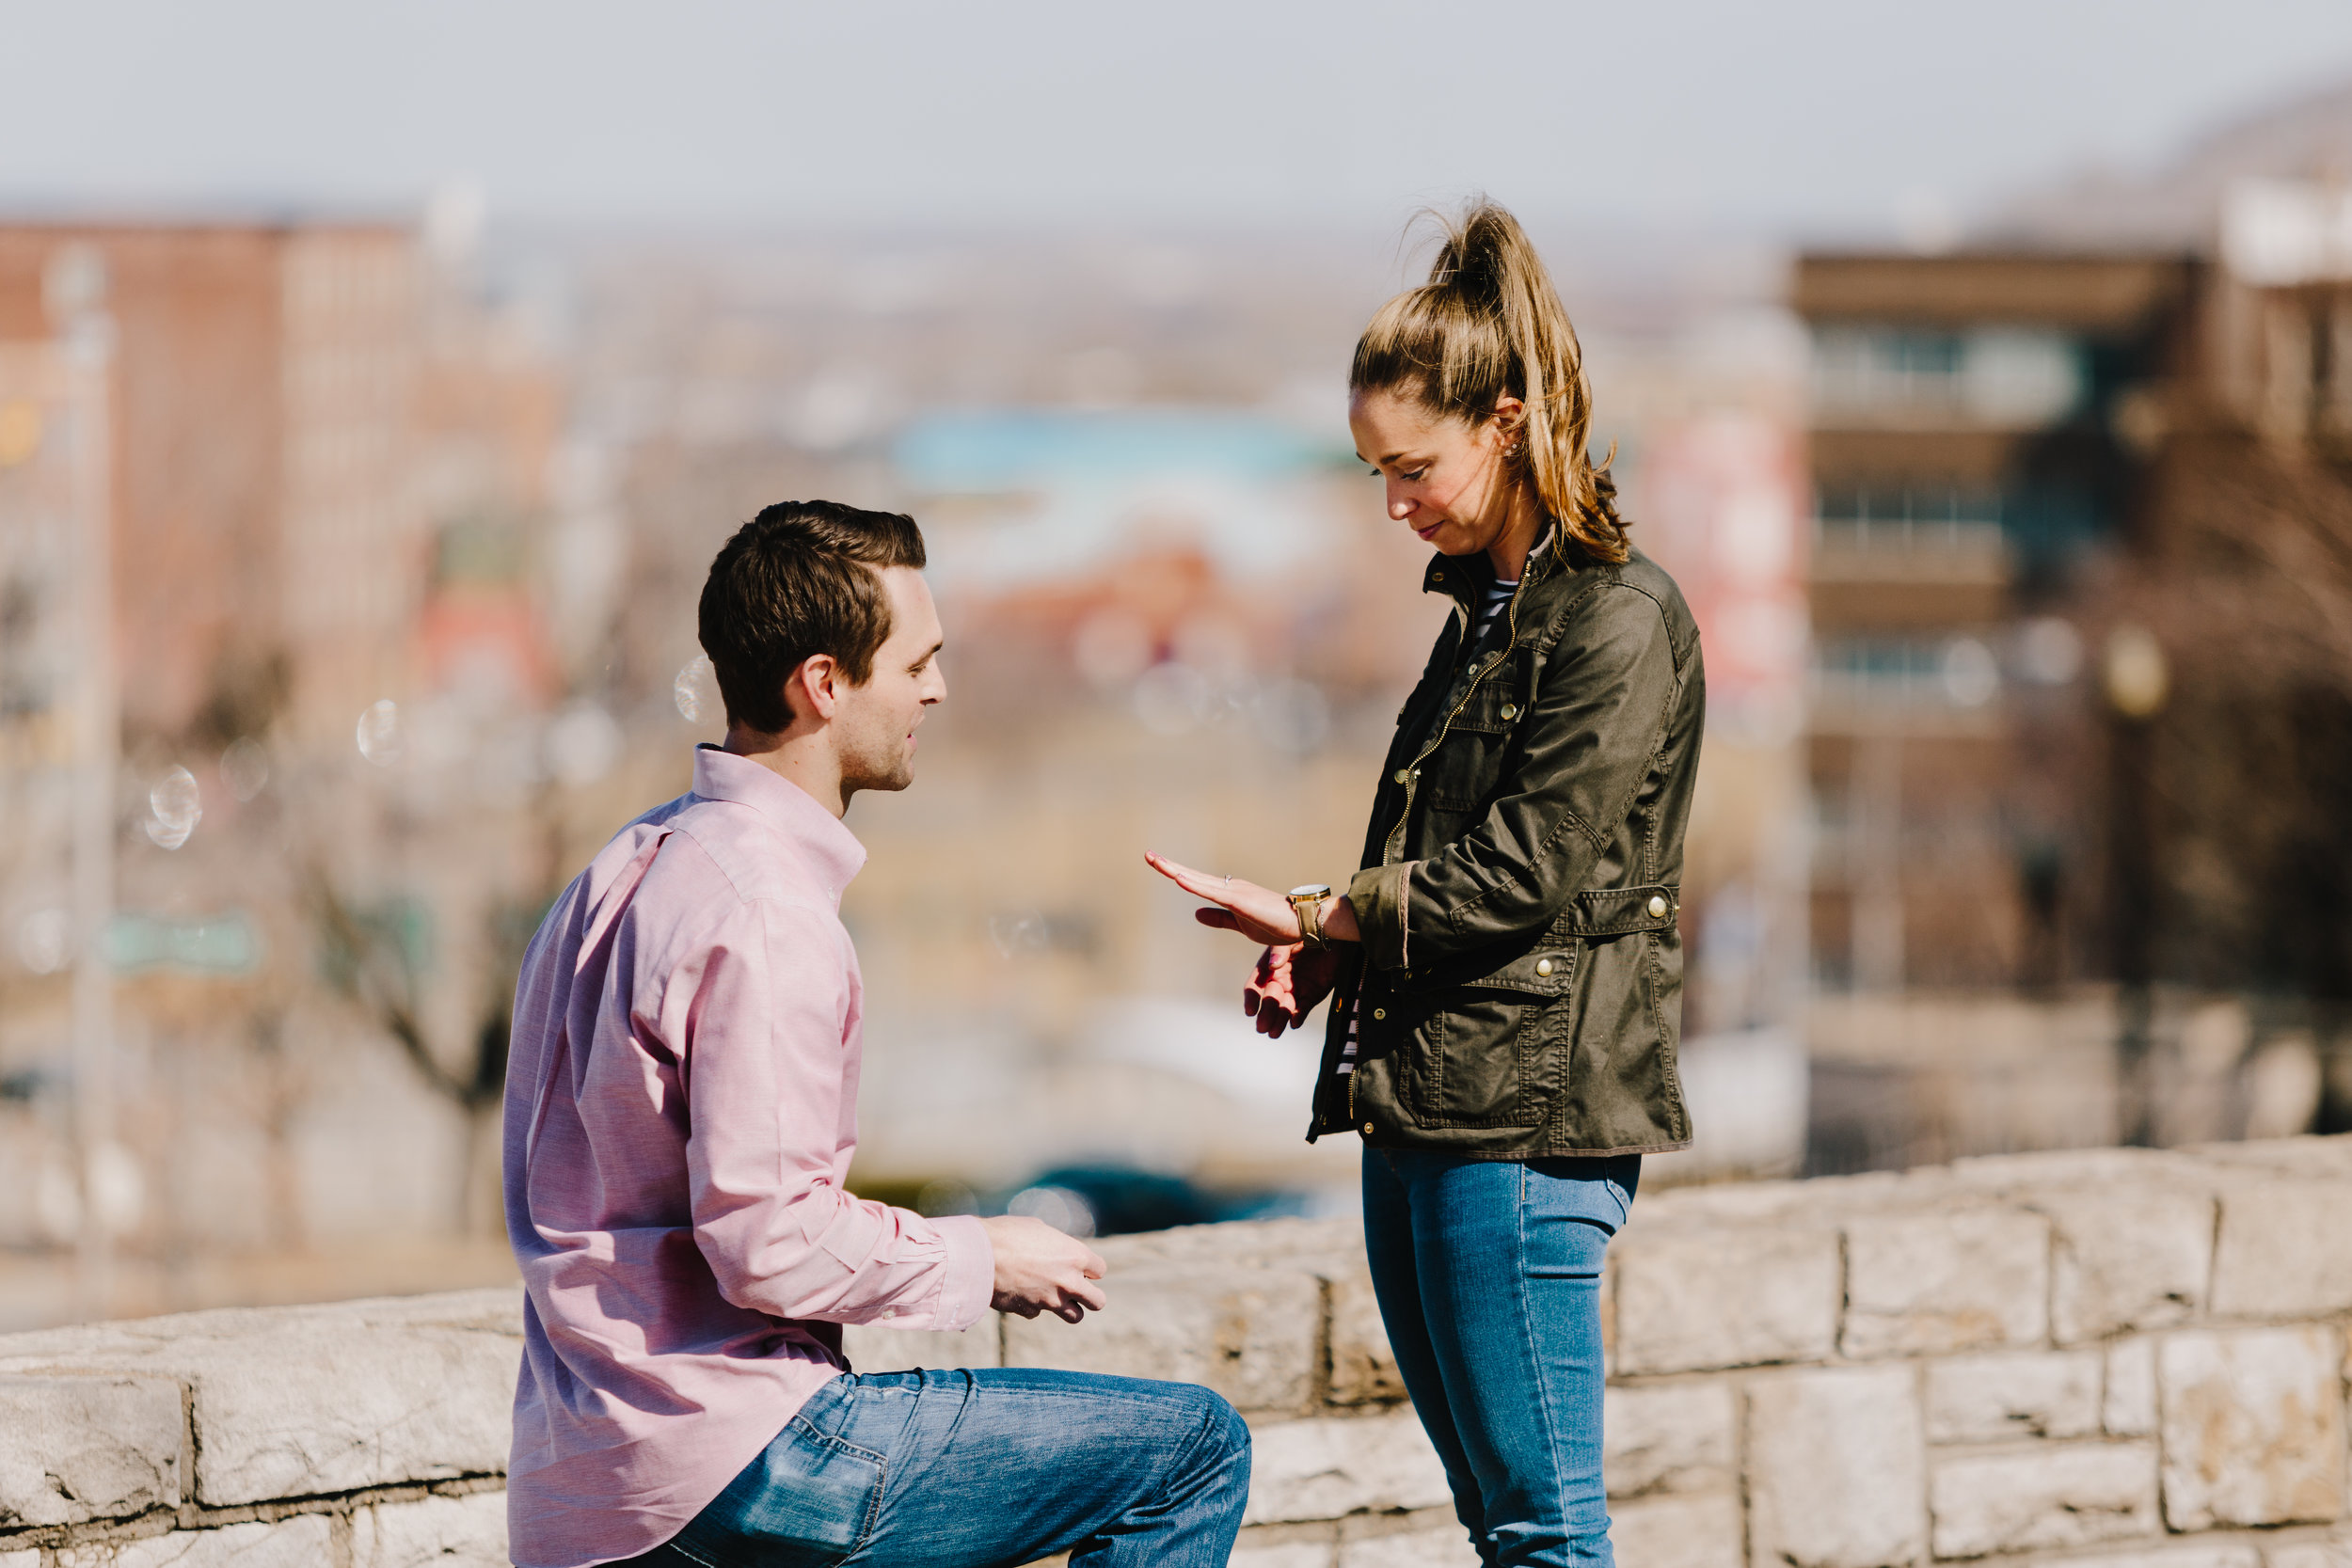 alyssa barletter photography kansas city kc proposal engagement how he asked she said yes-3.jpg